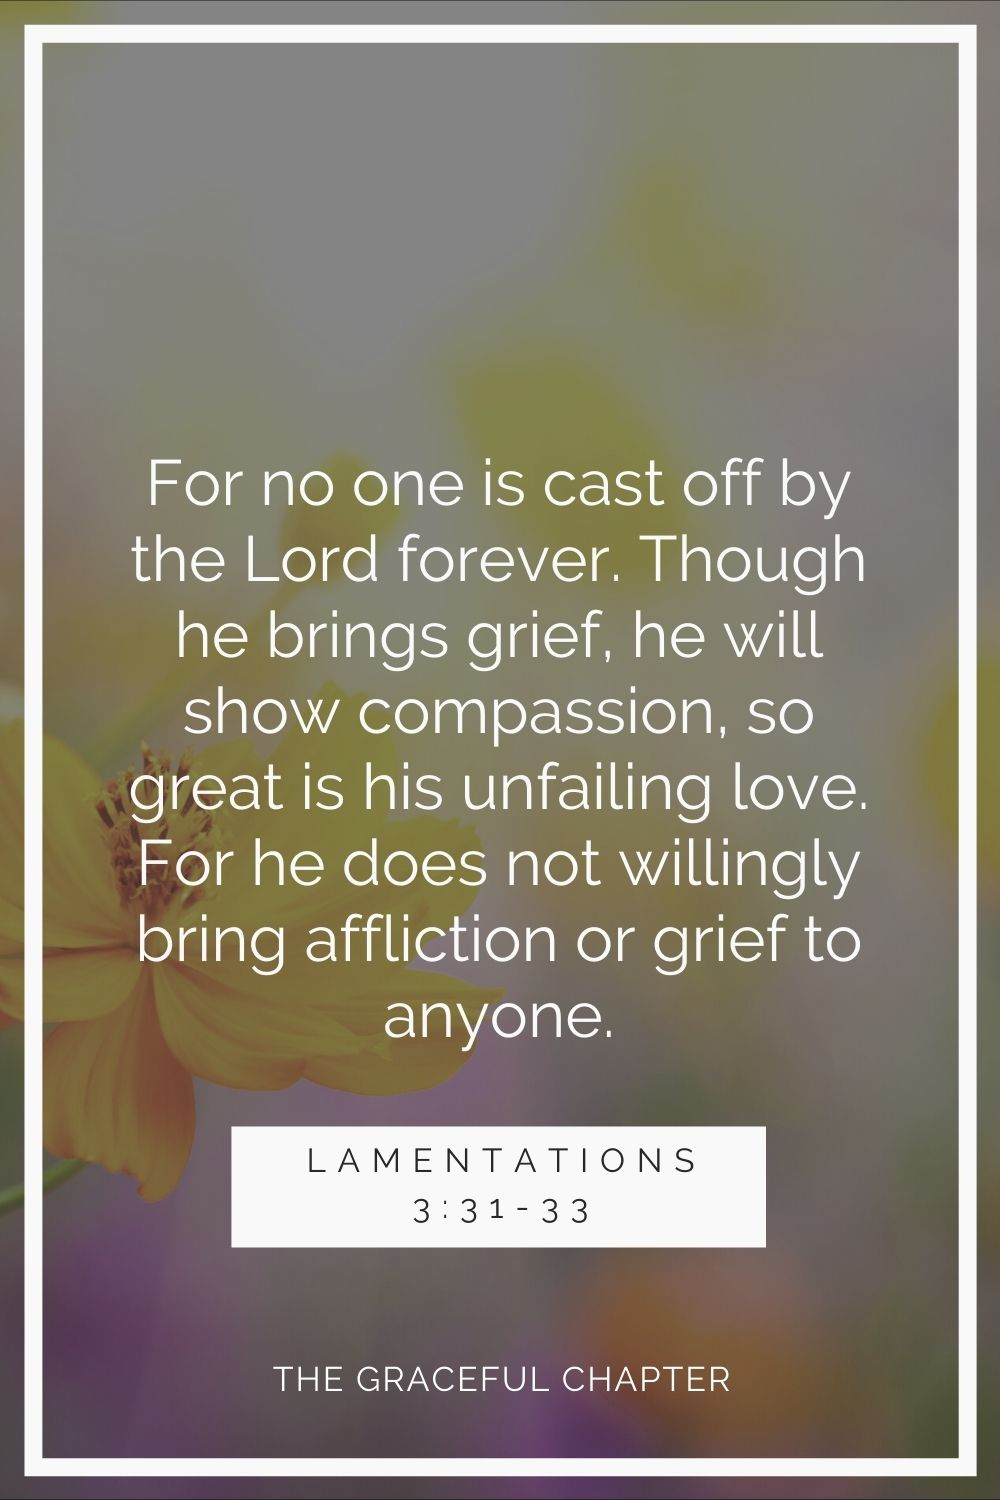 For no one is cast-off  by the Lord forever. Though he brings grief, he will show compassion, so great is his unfailing love. For he does not willingly bring affliction or grief to anyone Lamentations 3:31-33.